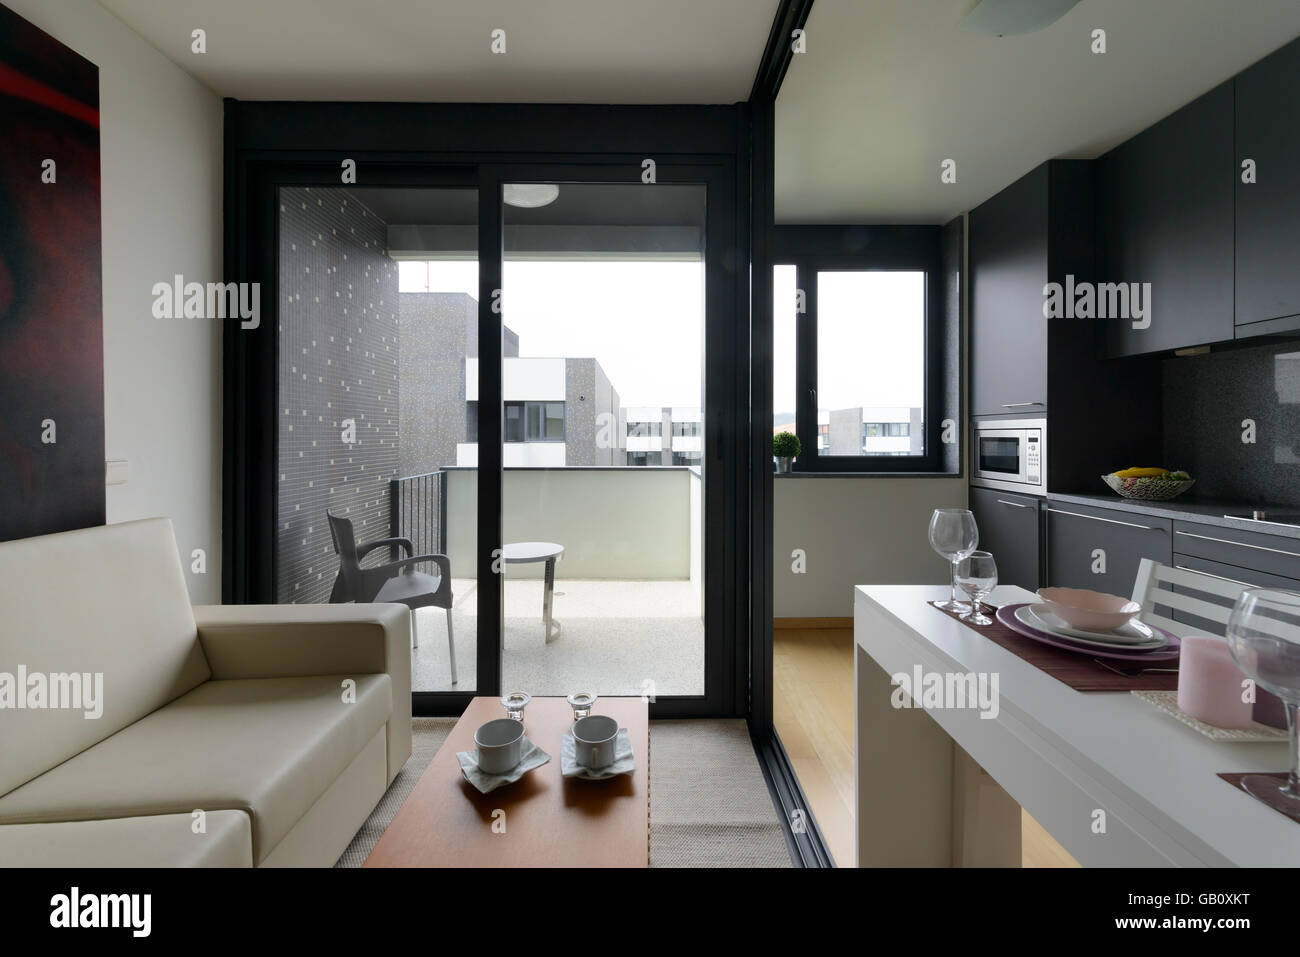 Small Studio Apartment Open Space Living Room And Kitchen Stock Photo Alamy